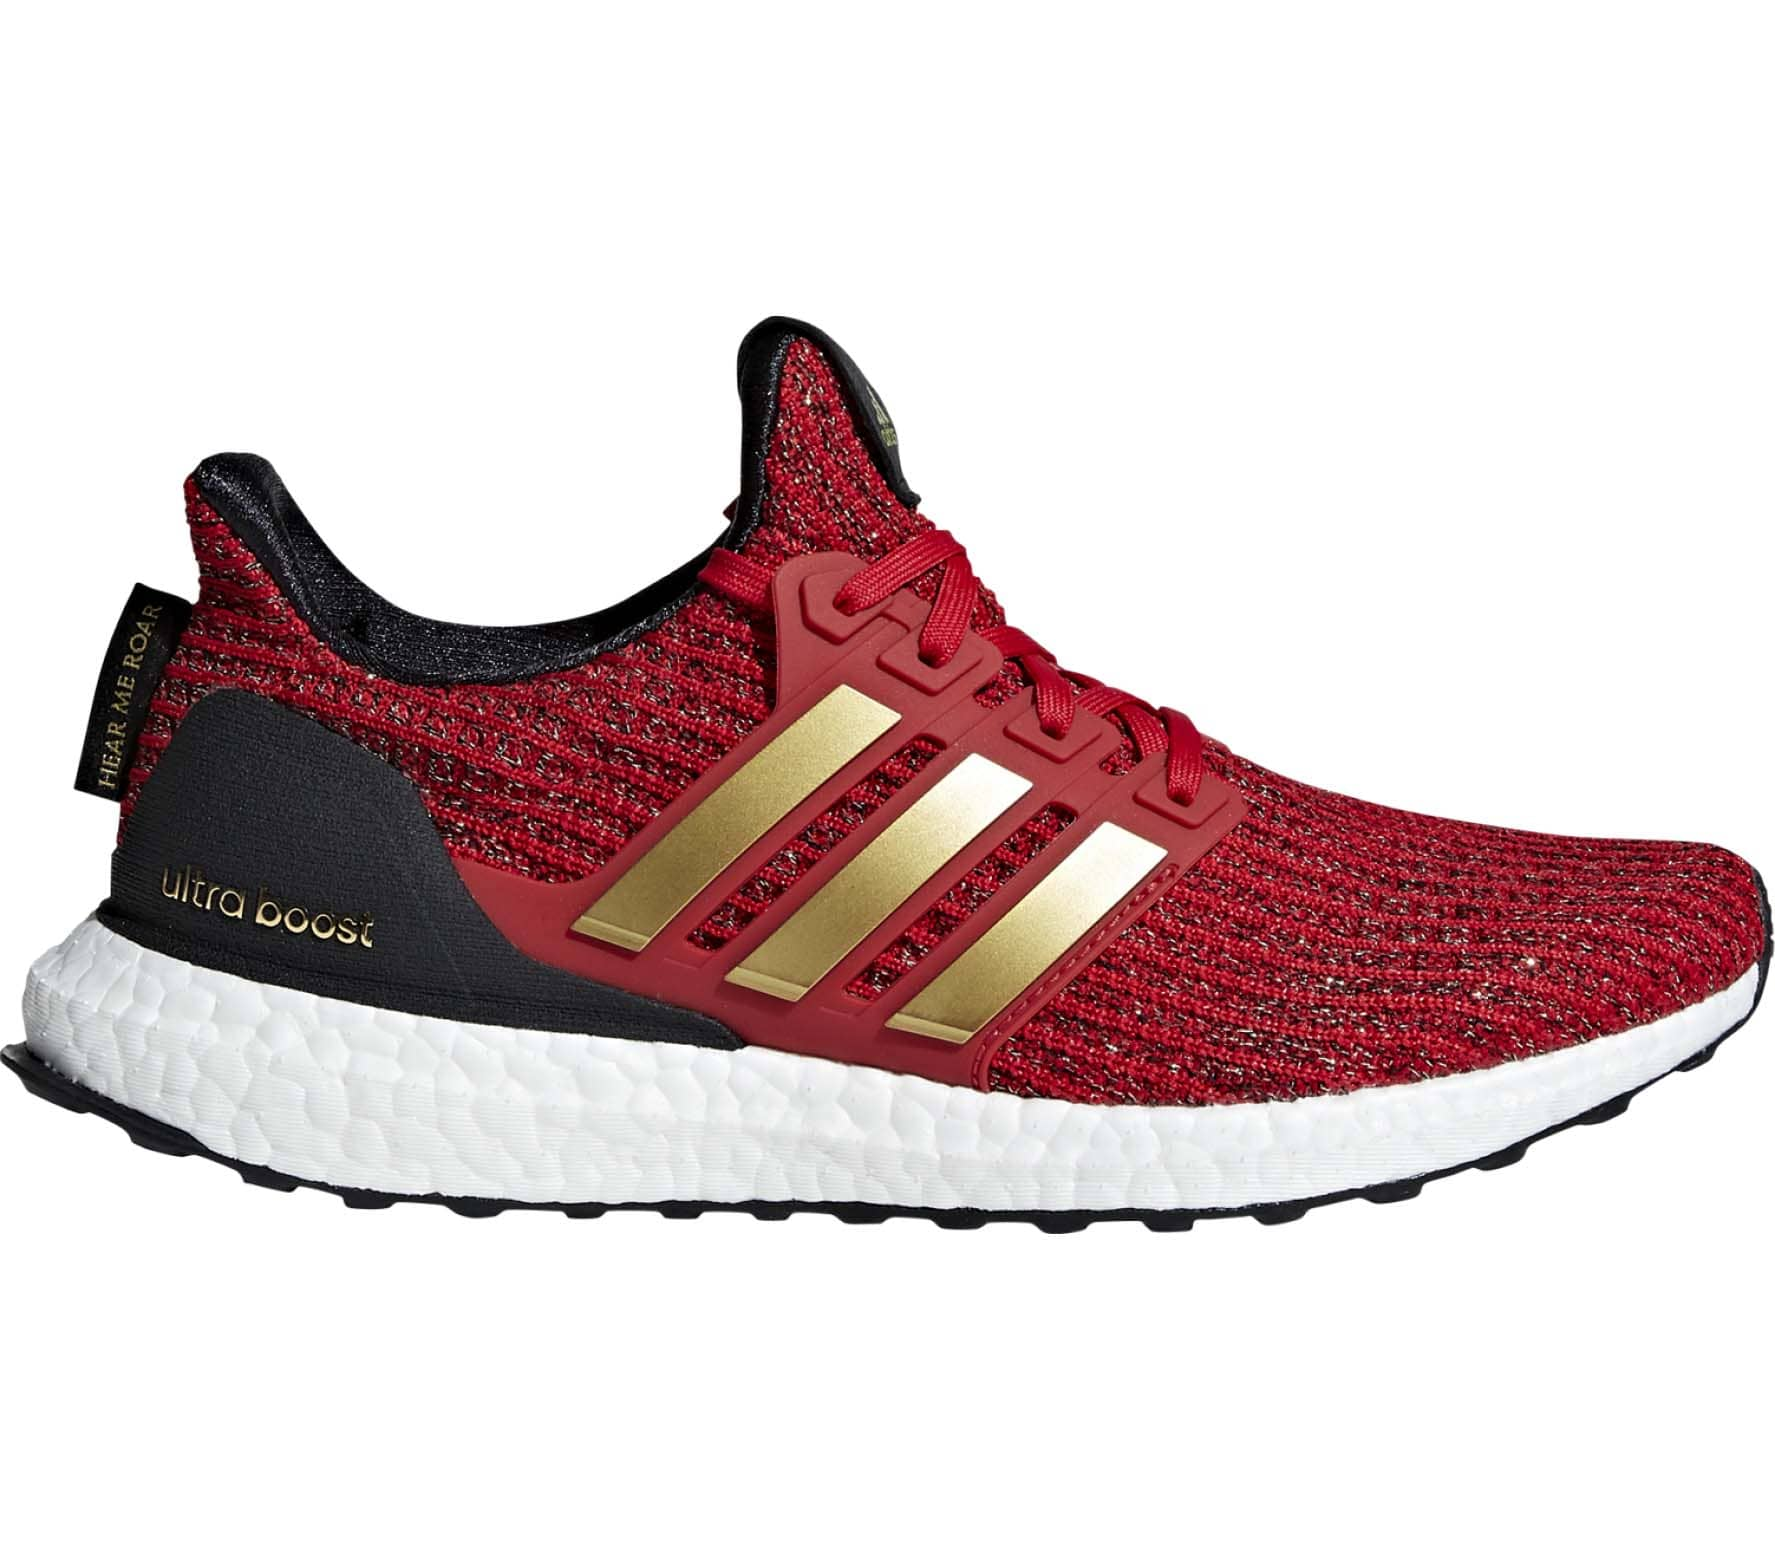 adidas X Game of Thrones Ultraboost House Lannister Sneakers